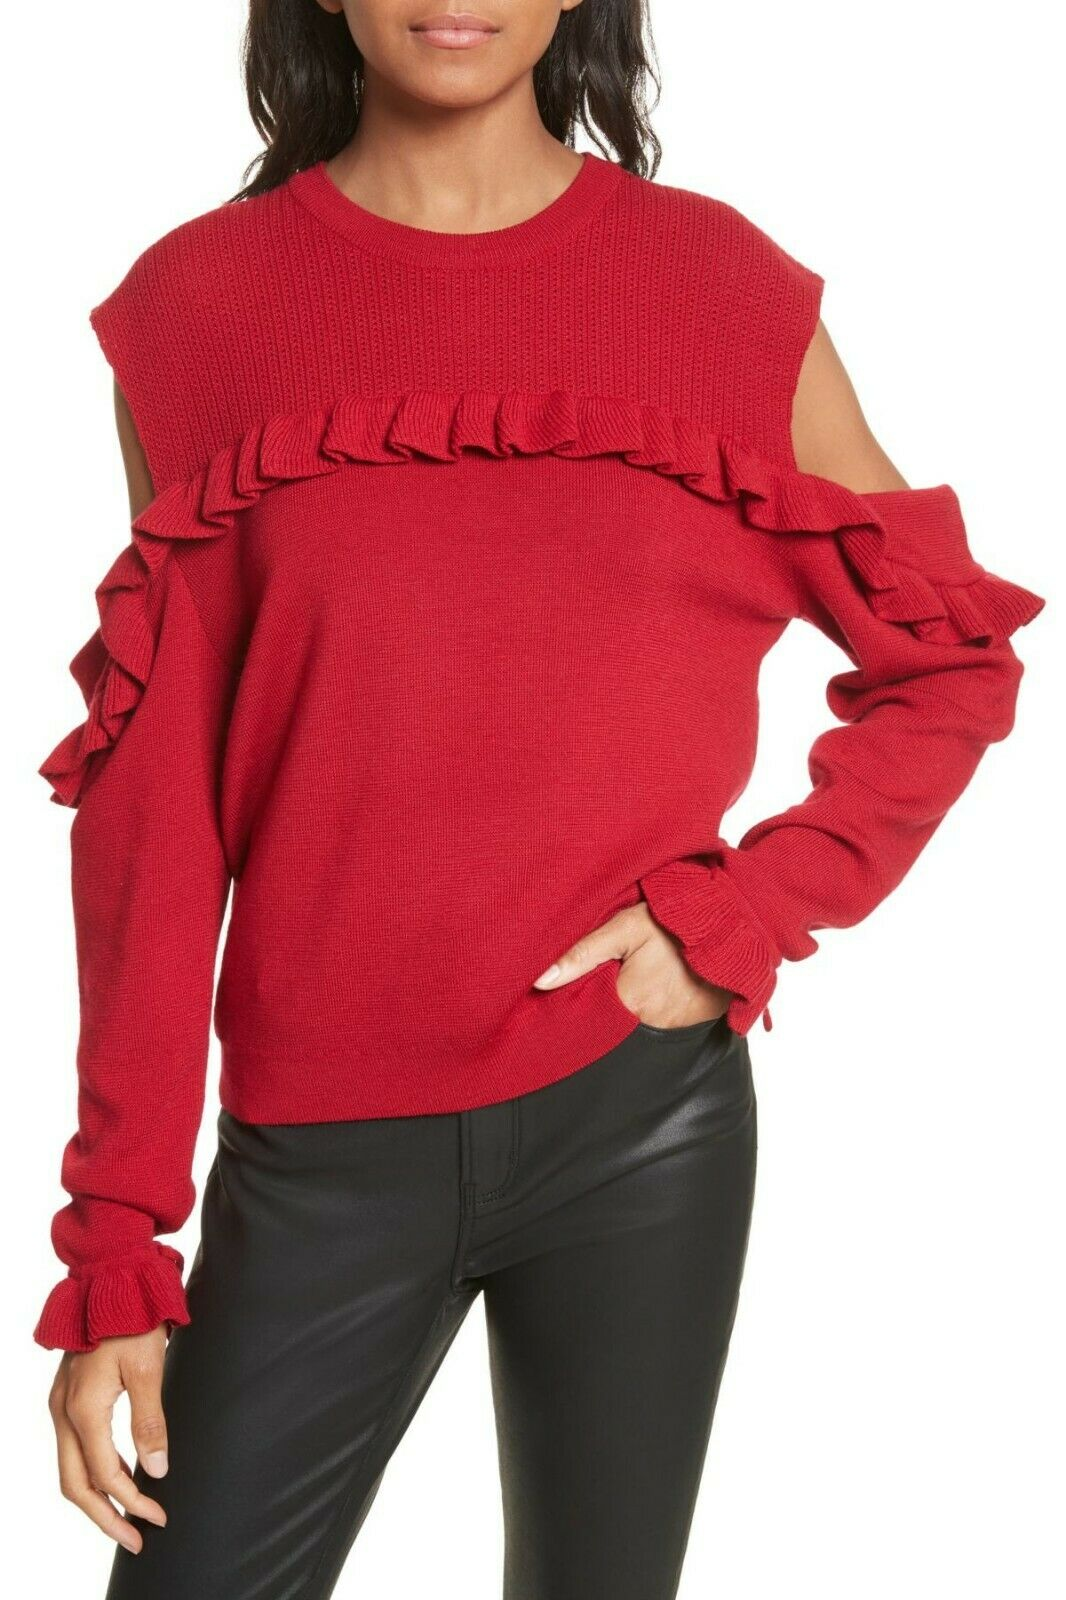 The kooples women BNWT red cold shoulder ruffle sweater sz Med NEW merino wool